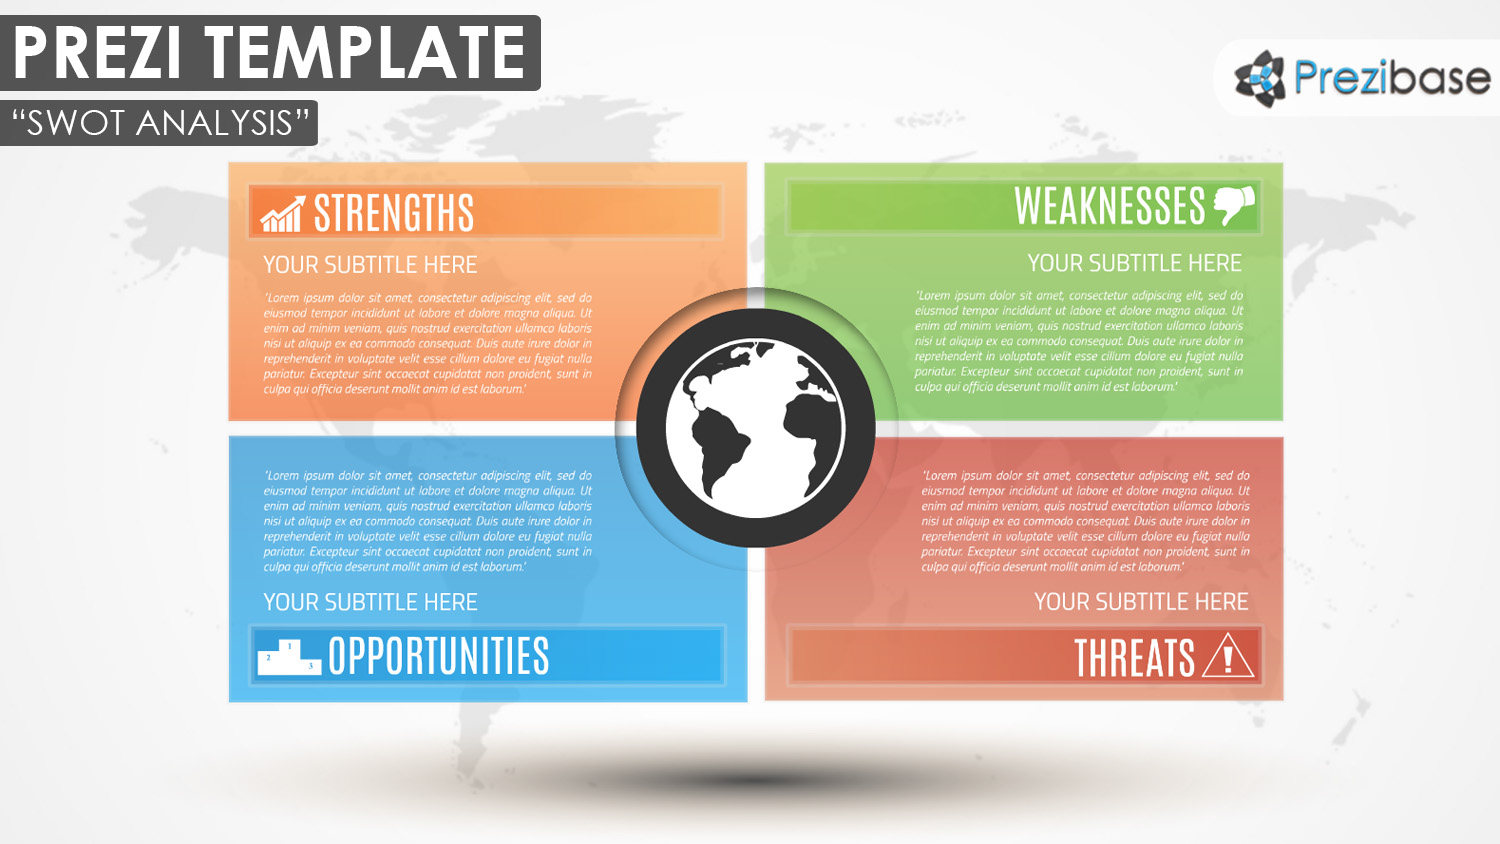 Business prezi templates prezibase swot analysis prezi friedricerecipe Choice Image